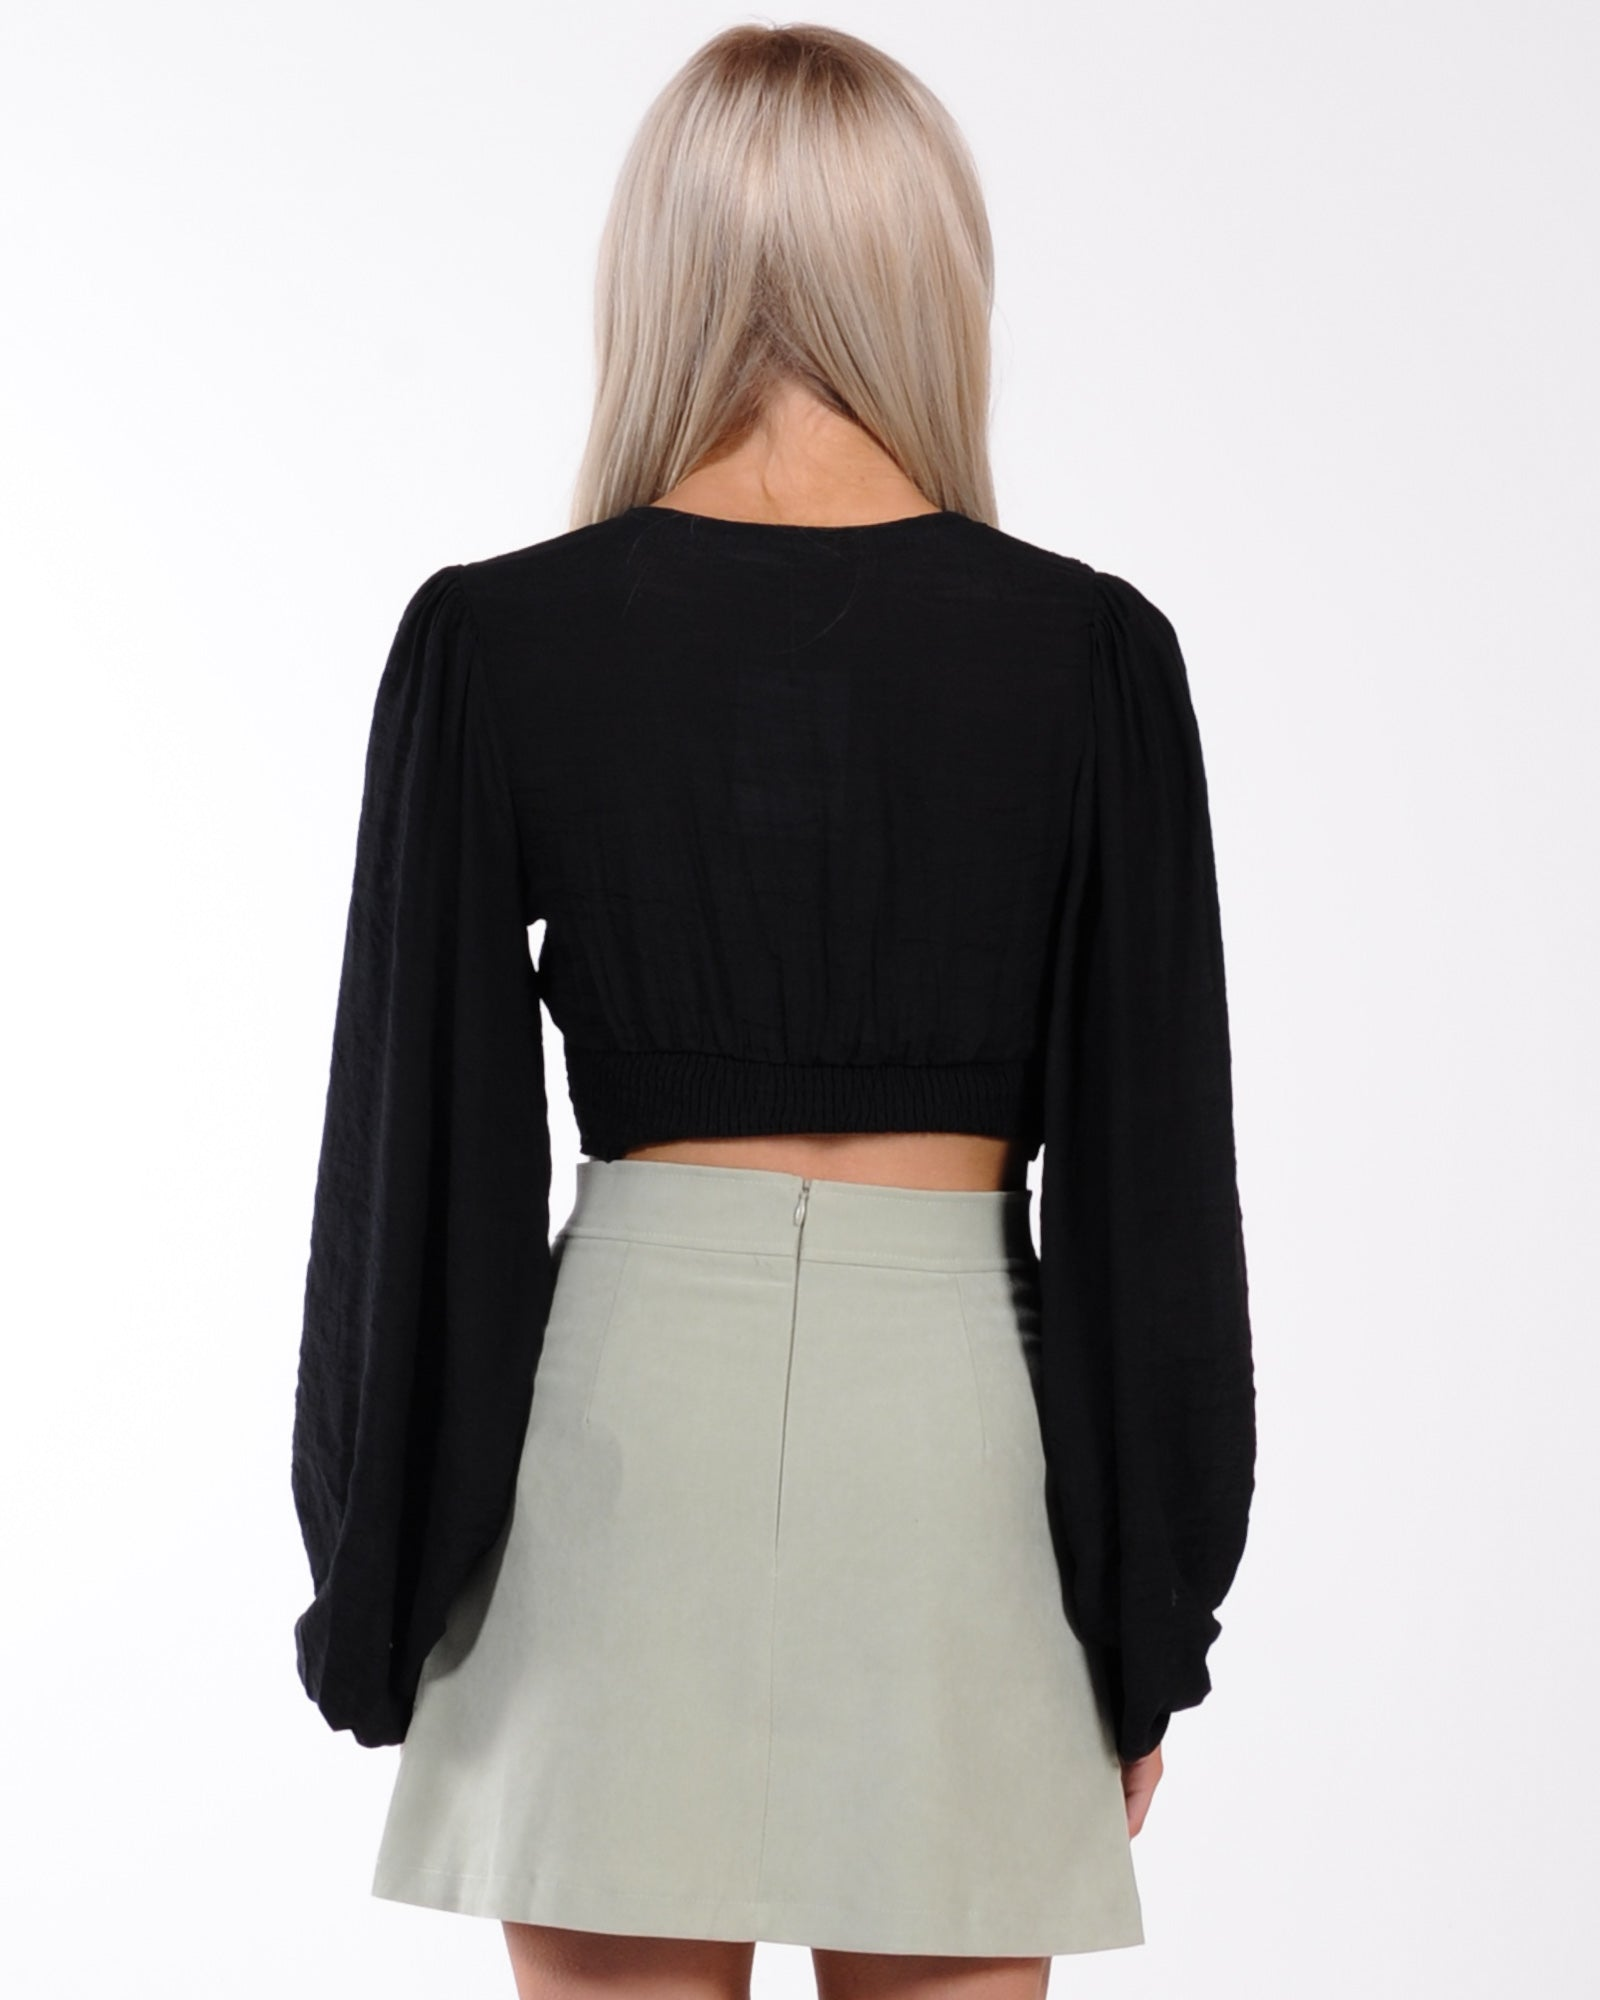 Sienna Shirt - Black